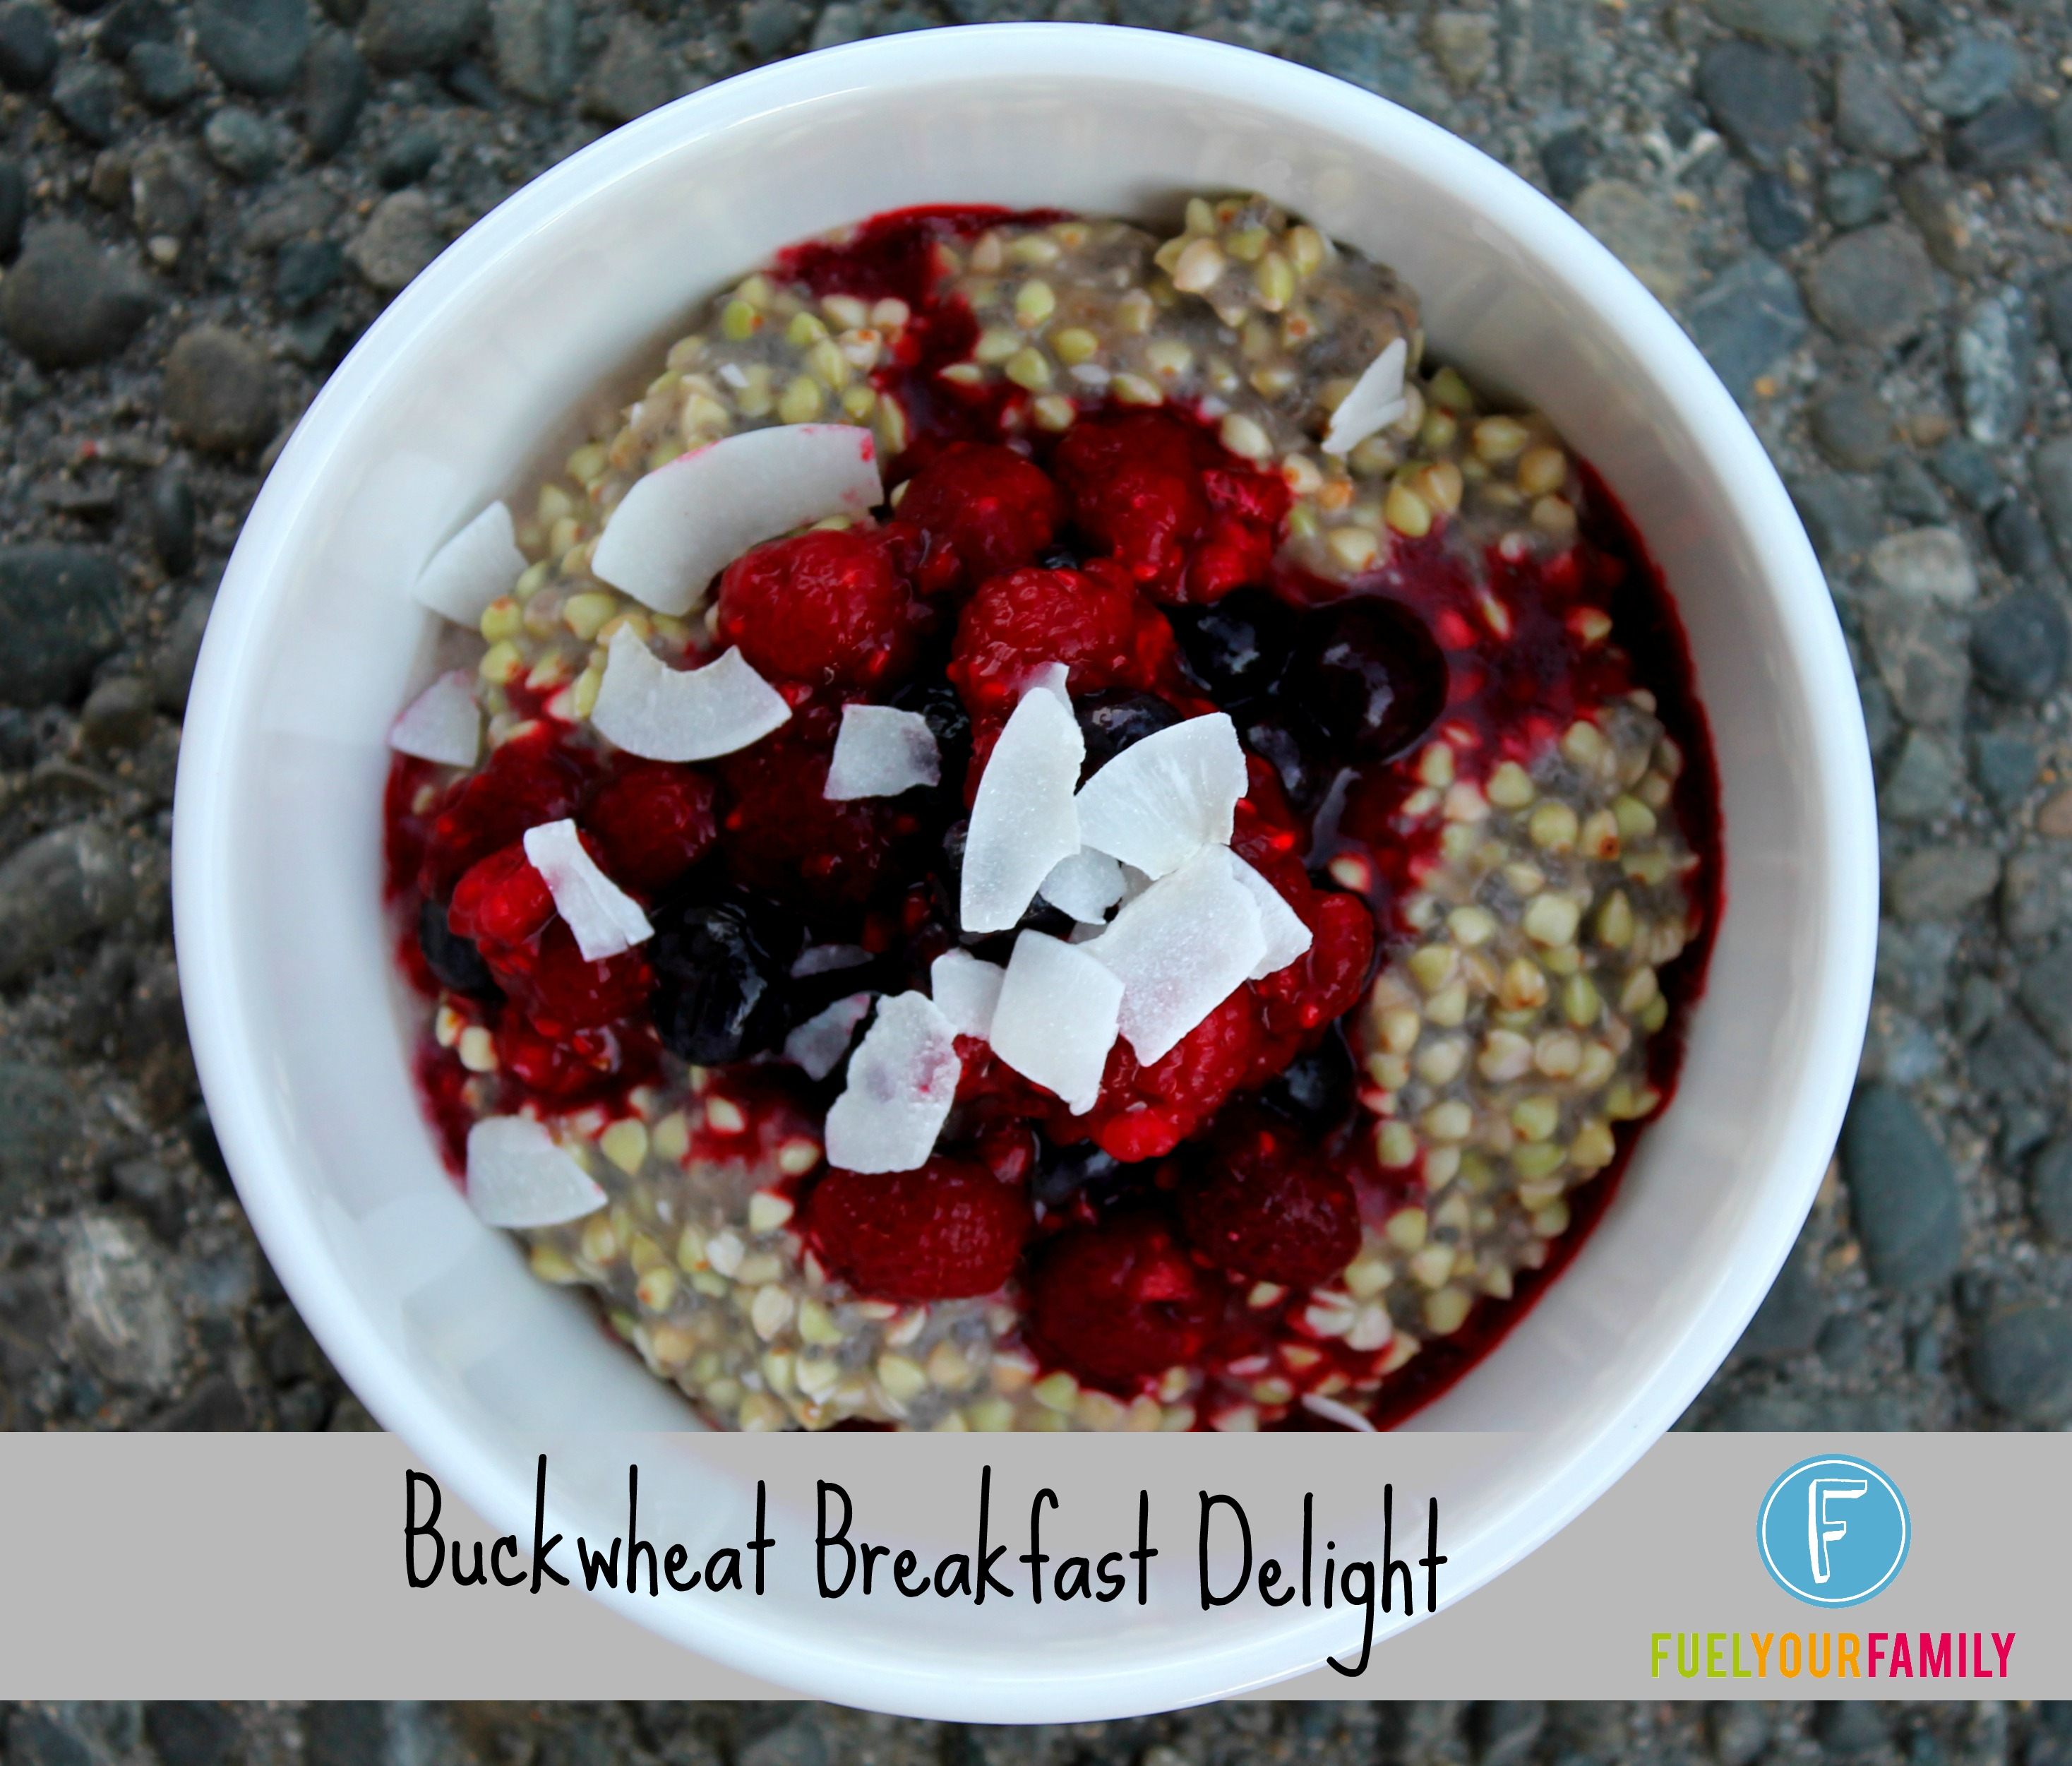 Buckwheat Breakfast Delight title